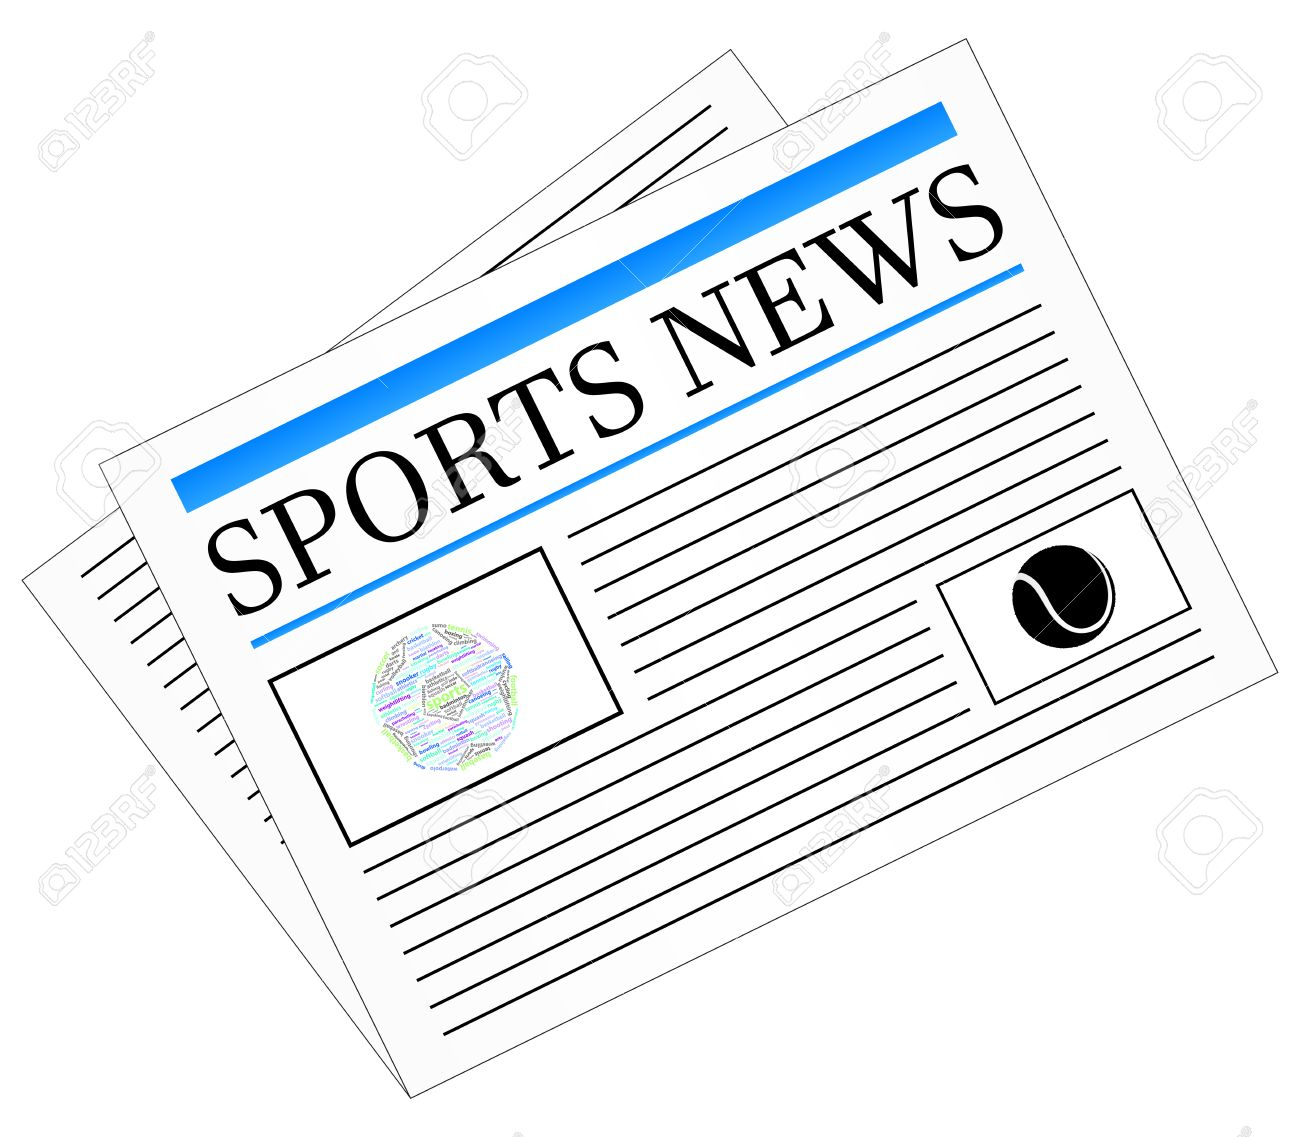 Sports News Newspaper Headline Front Page Royalty Free Cliparts Vectors And Stock Illustration Image 23907965